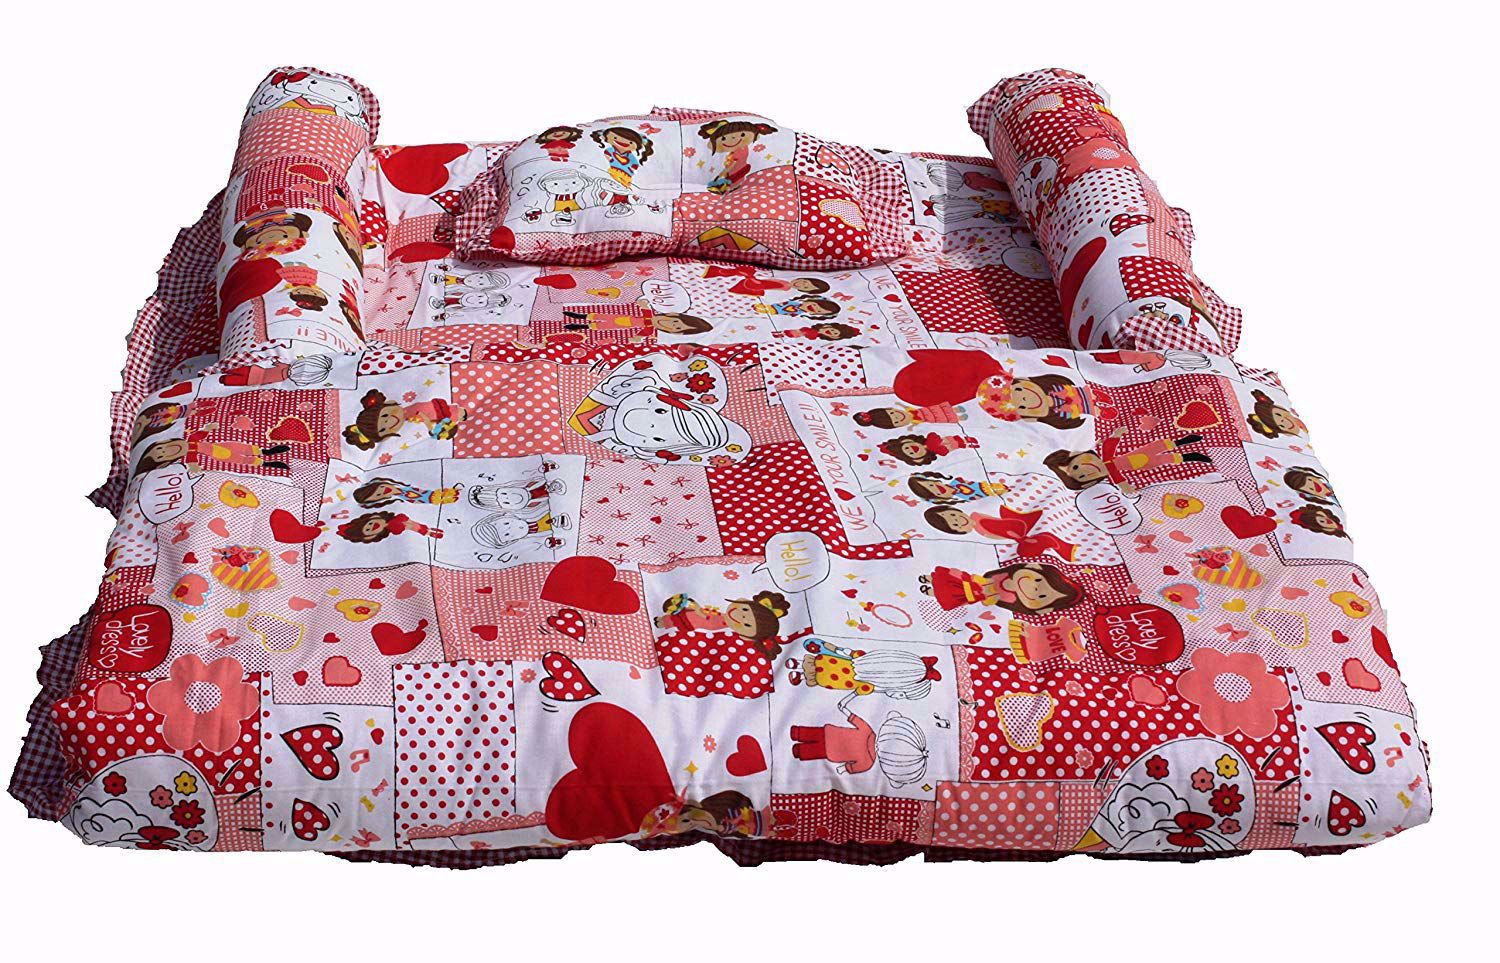 Baby Mattress with Quilt Collage (Red) - mt03-red-collage,baby cot bedding sets sale online